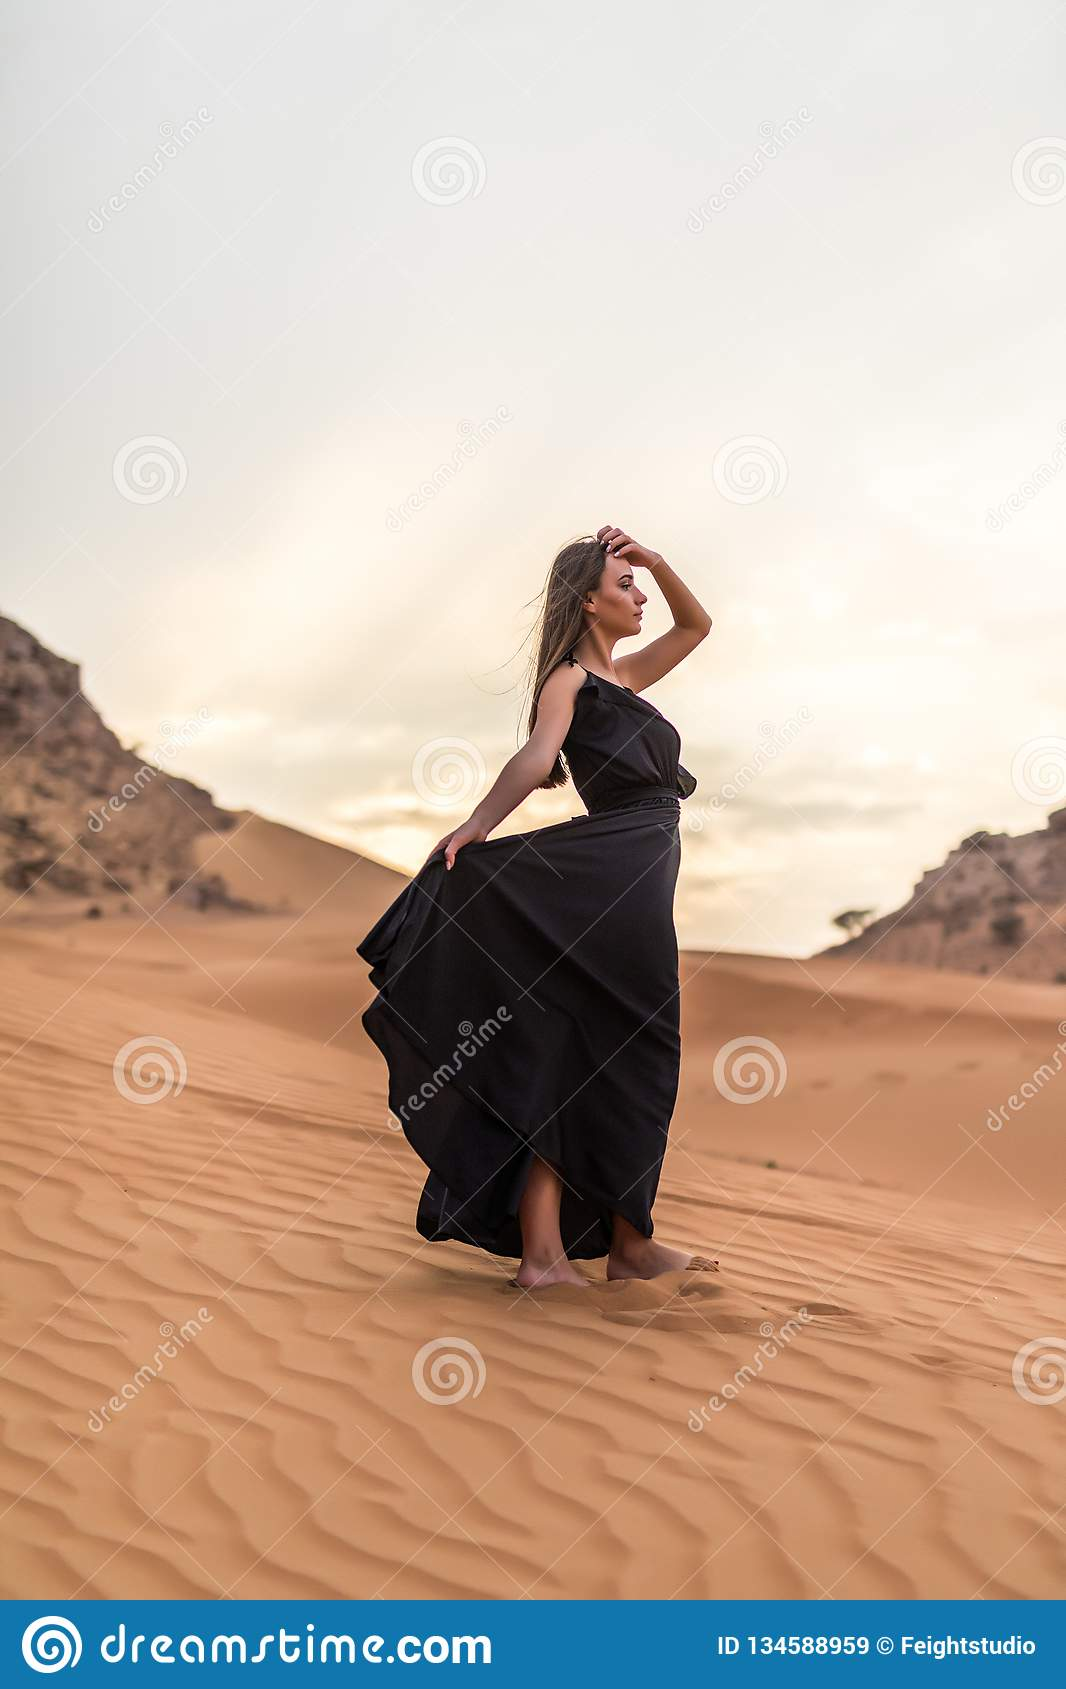 Young pretty woman in black dress stands on dune in desert at sunny hot day